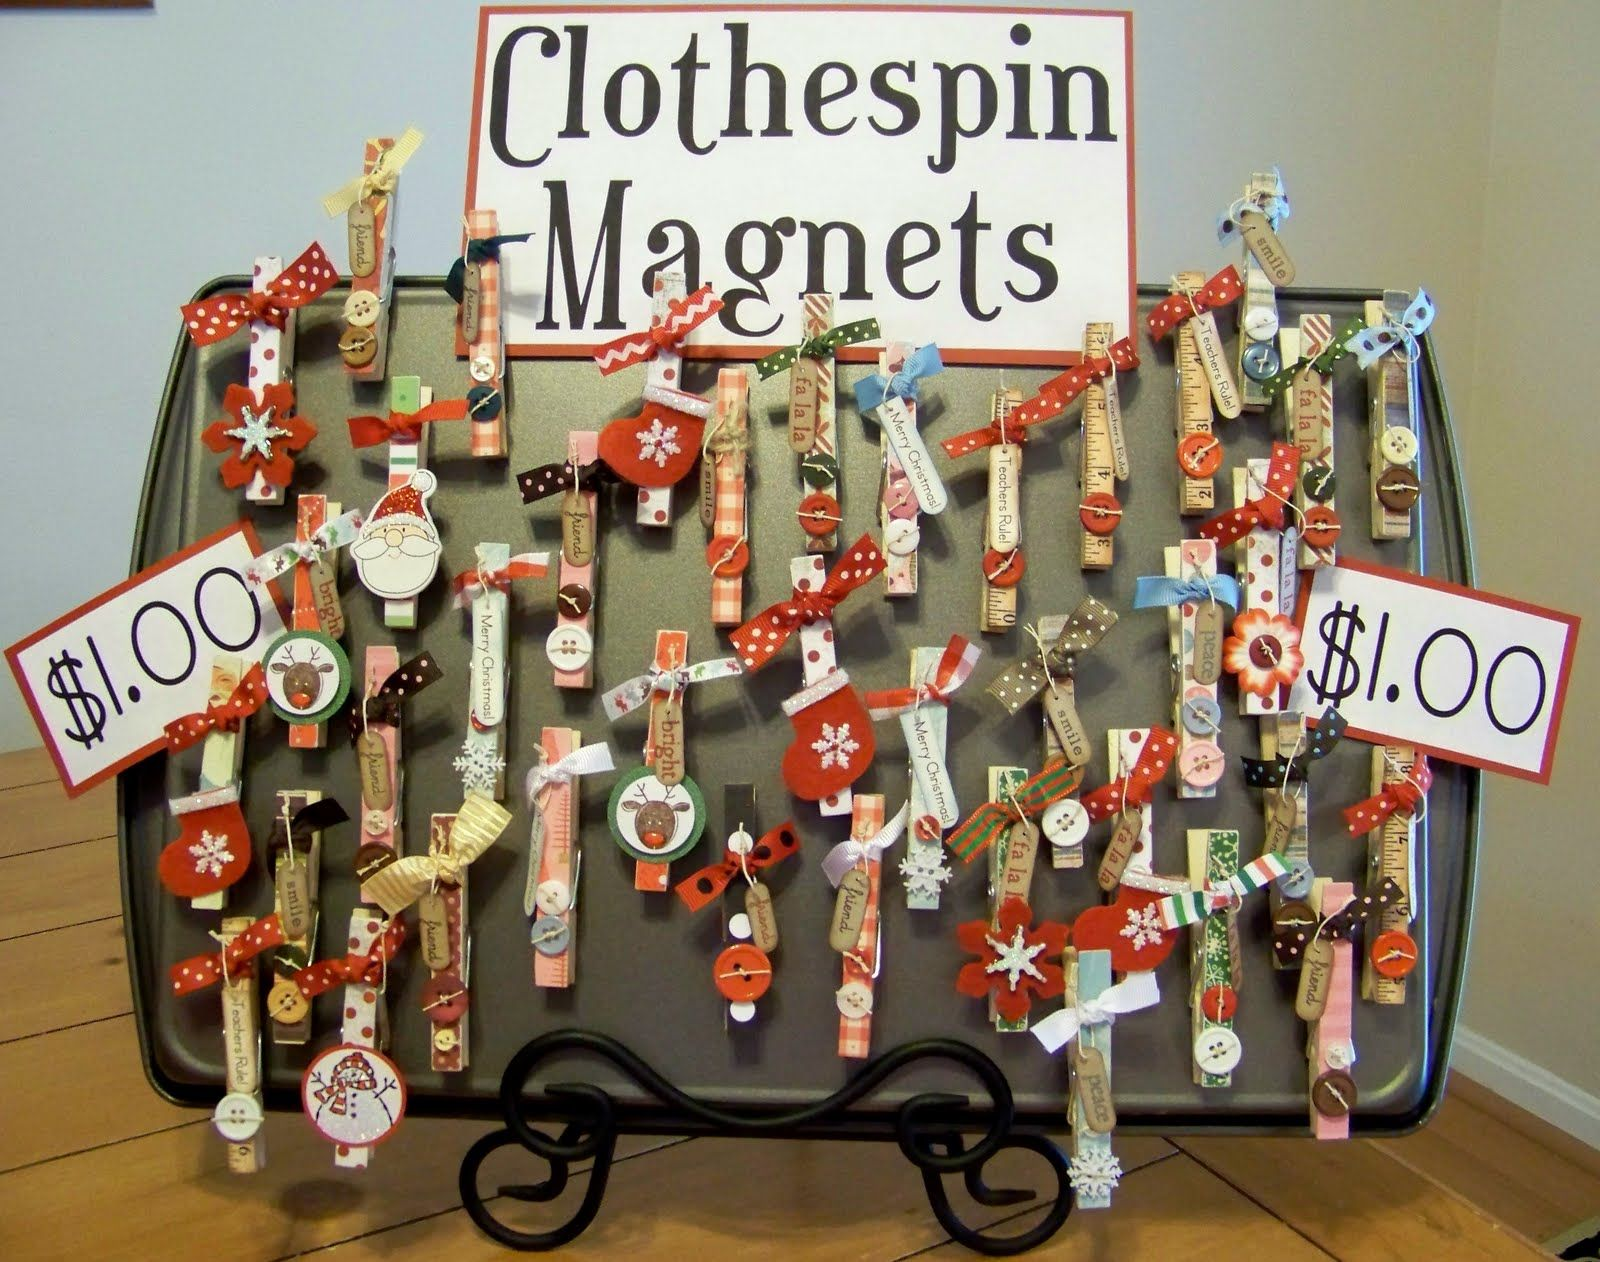 Christmas Craft Ideas Sell Part - 40: Clothespin Magnets Easy Cute Craft, Clothespins Magnets Color Papers And  Decorations.